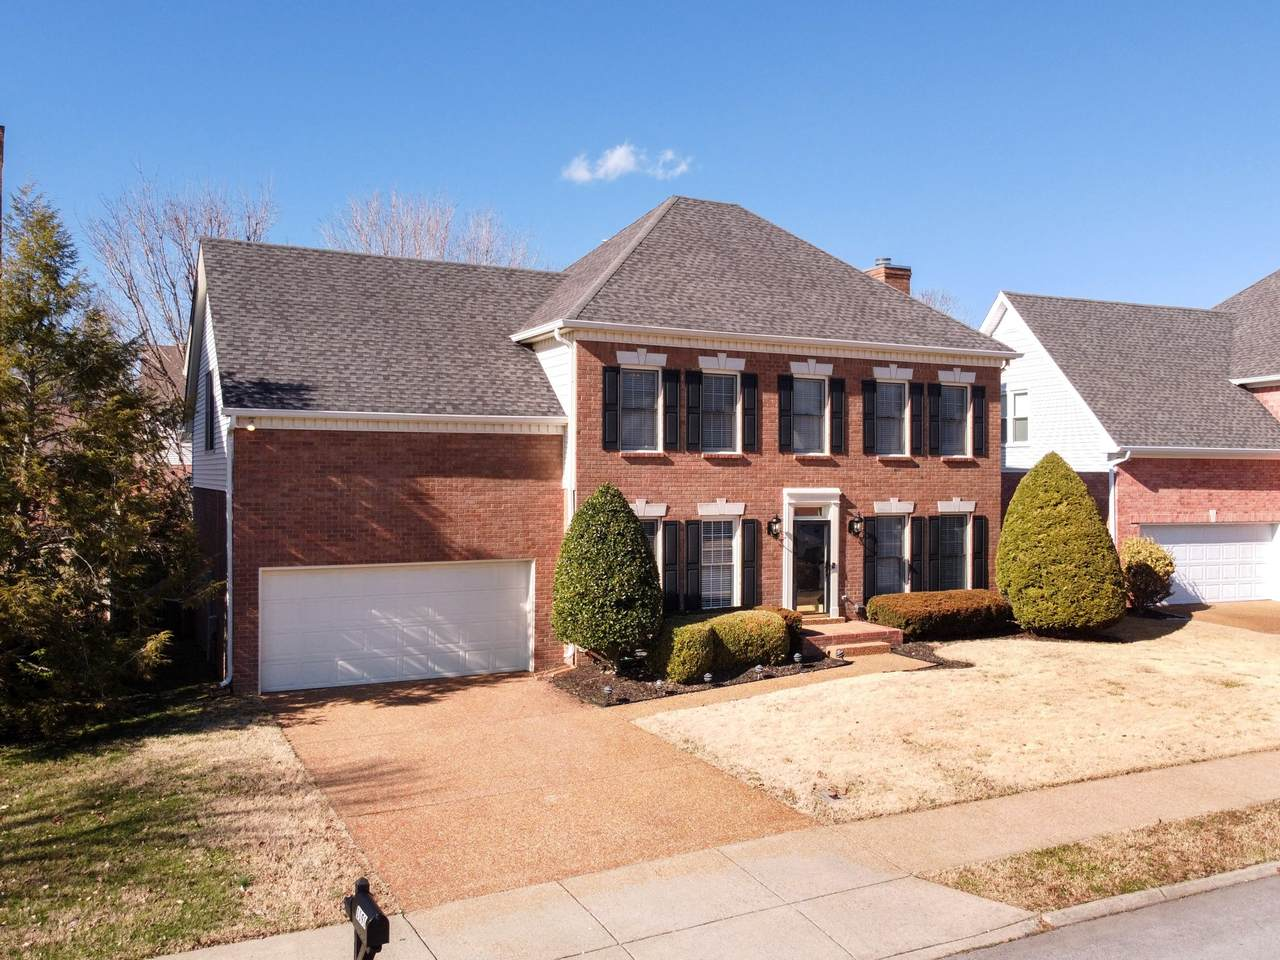 1191 Buckingham Cir - Photo 1